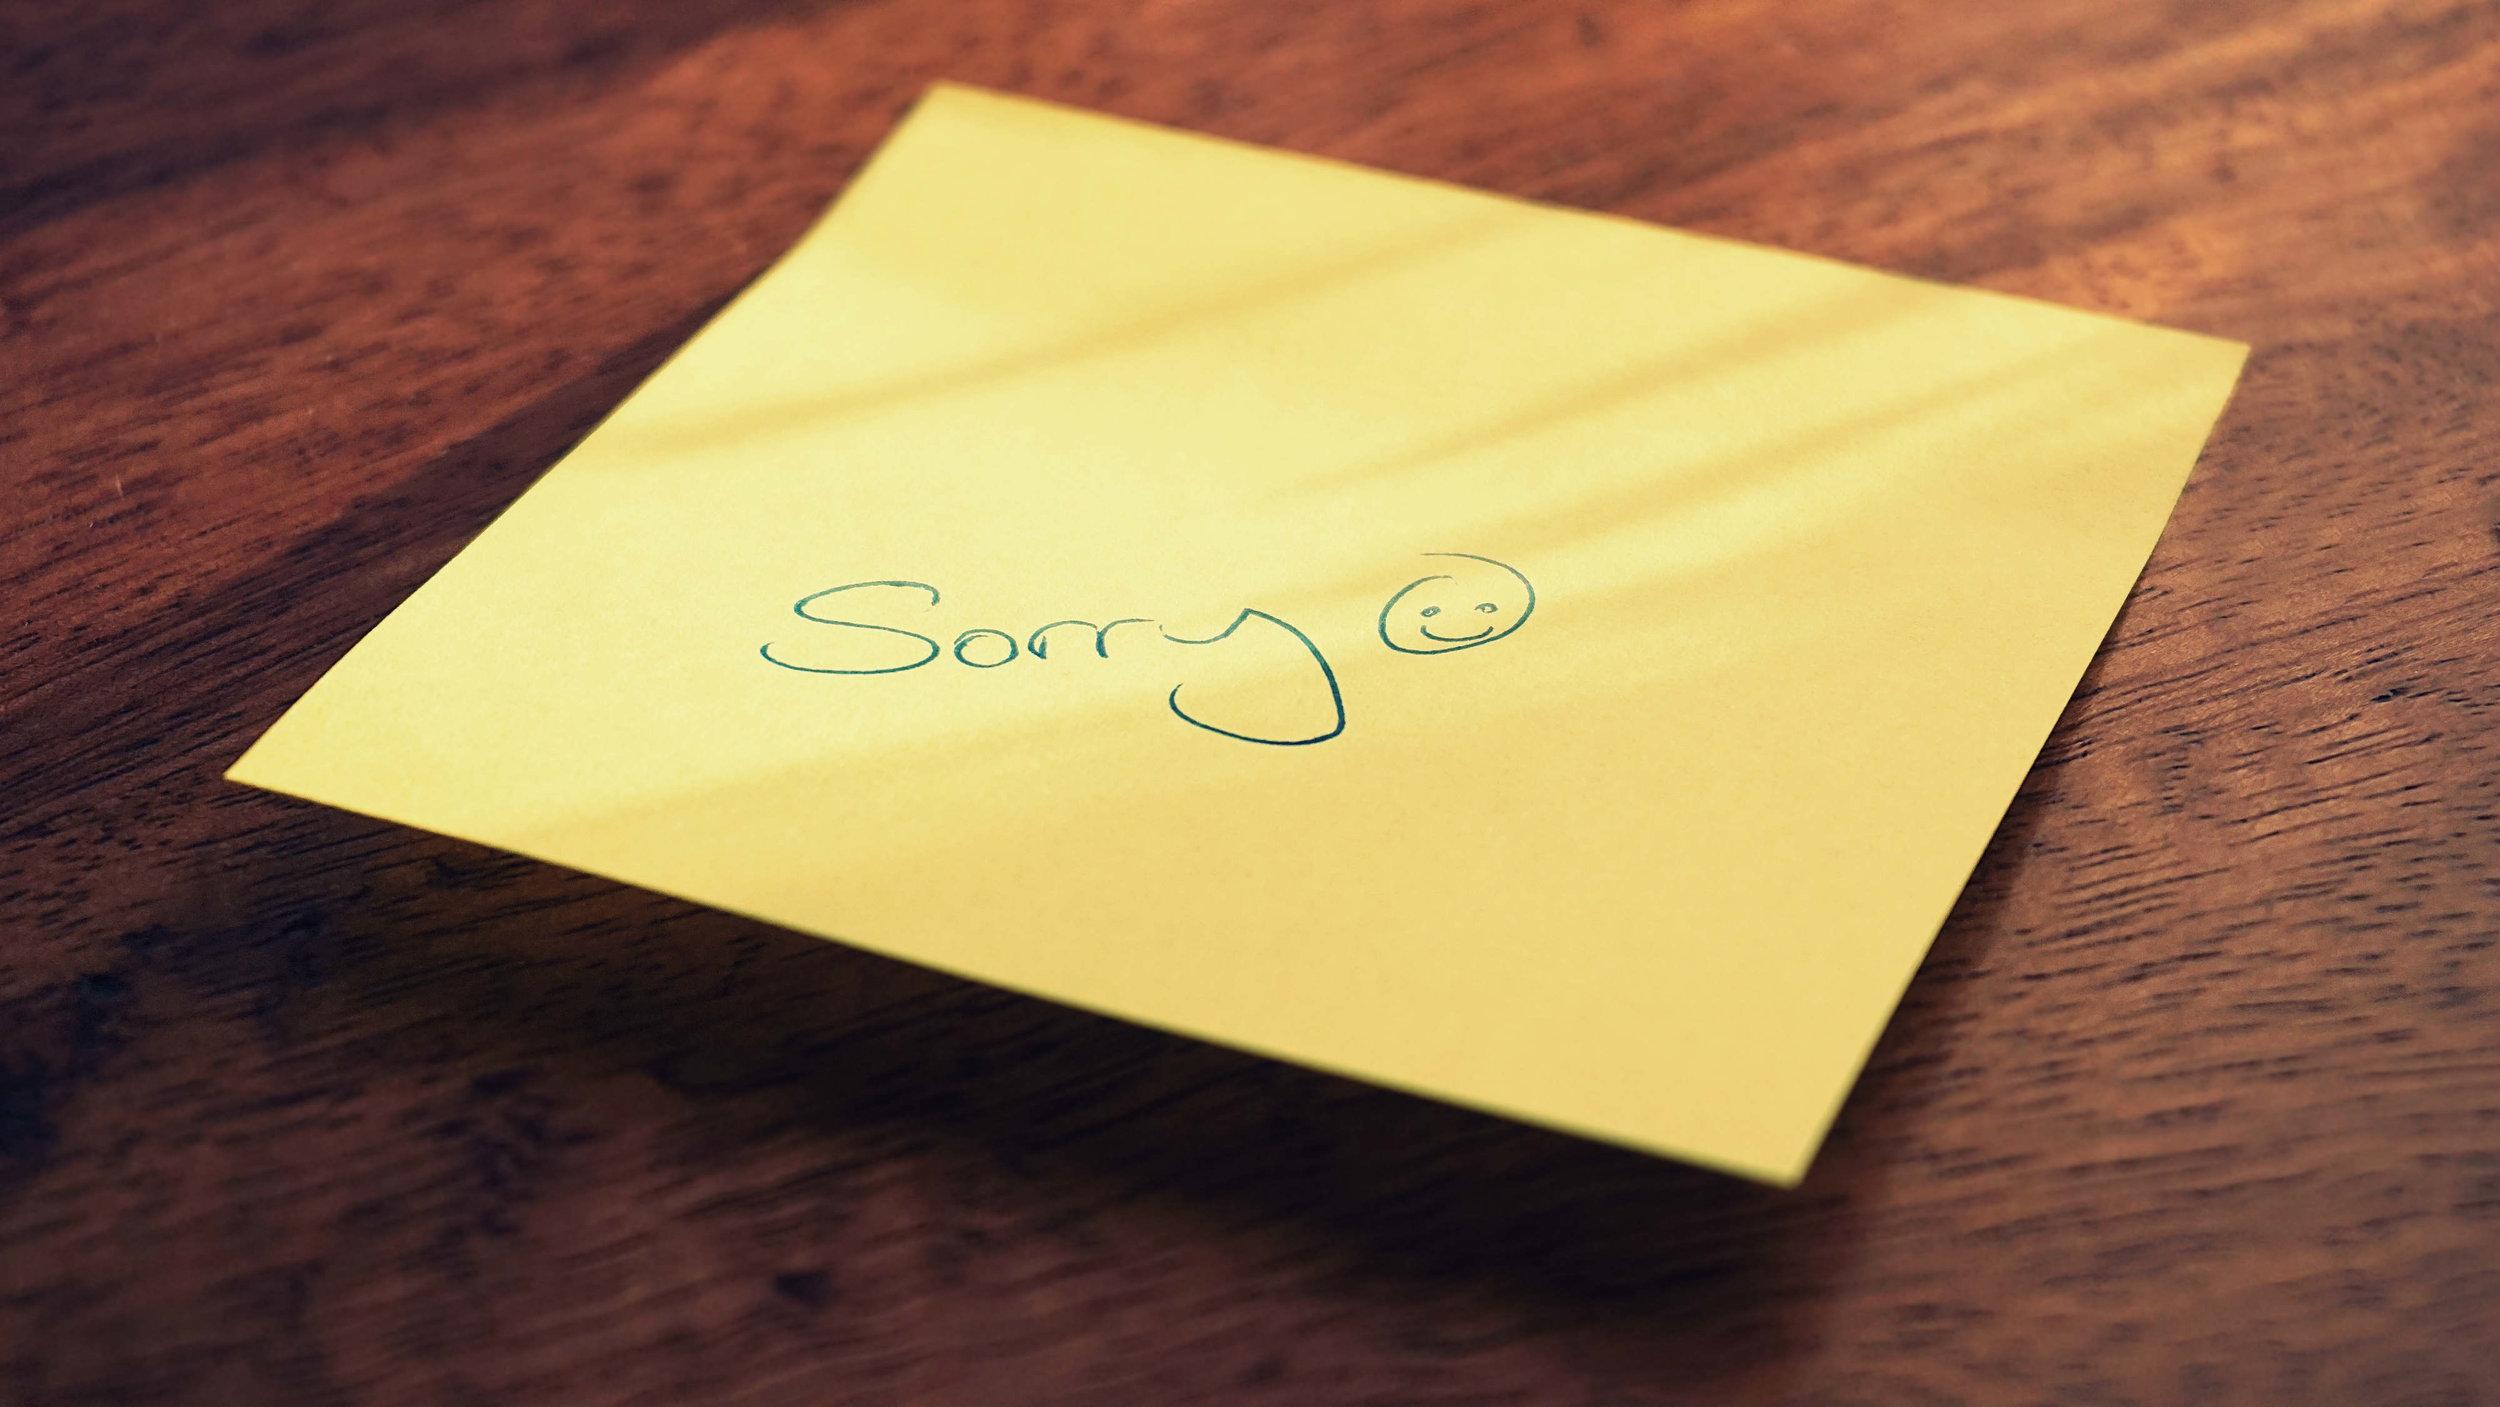 saying sorry means nothing and is manipulation when it's said by a psychological and emotional abuser